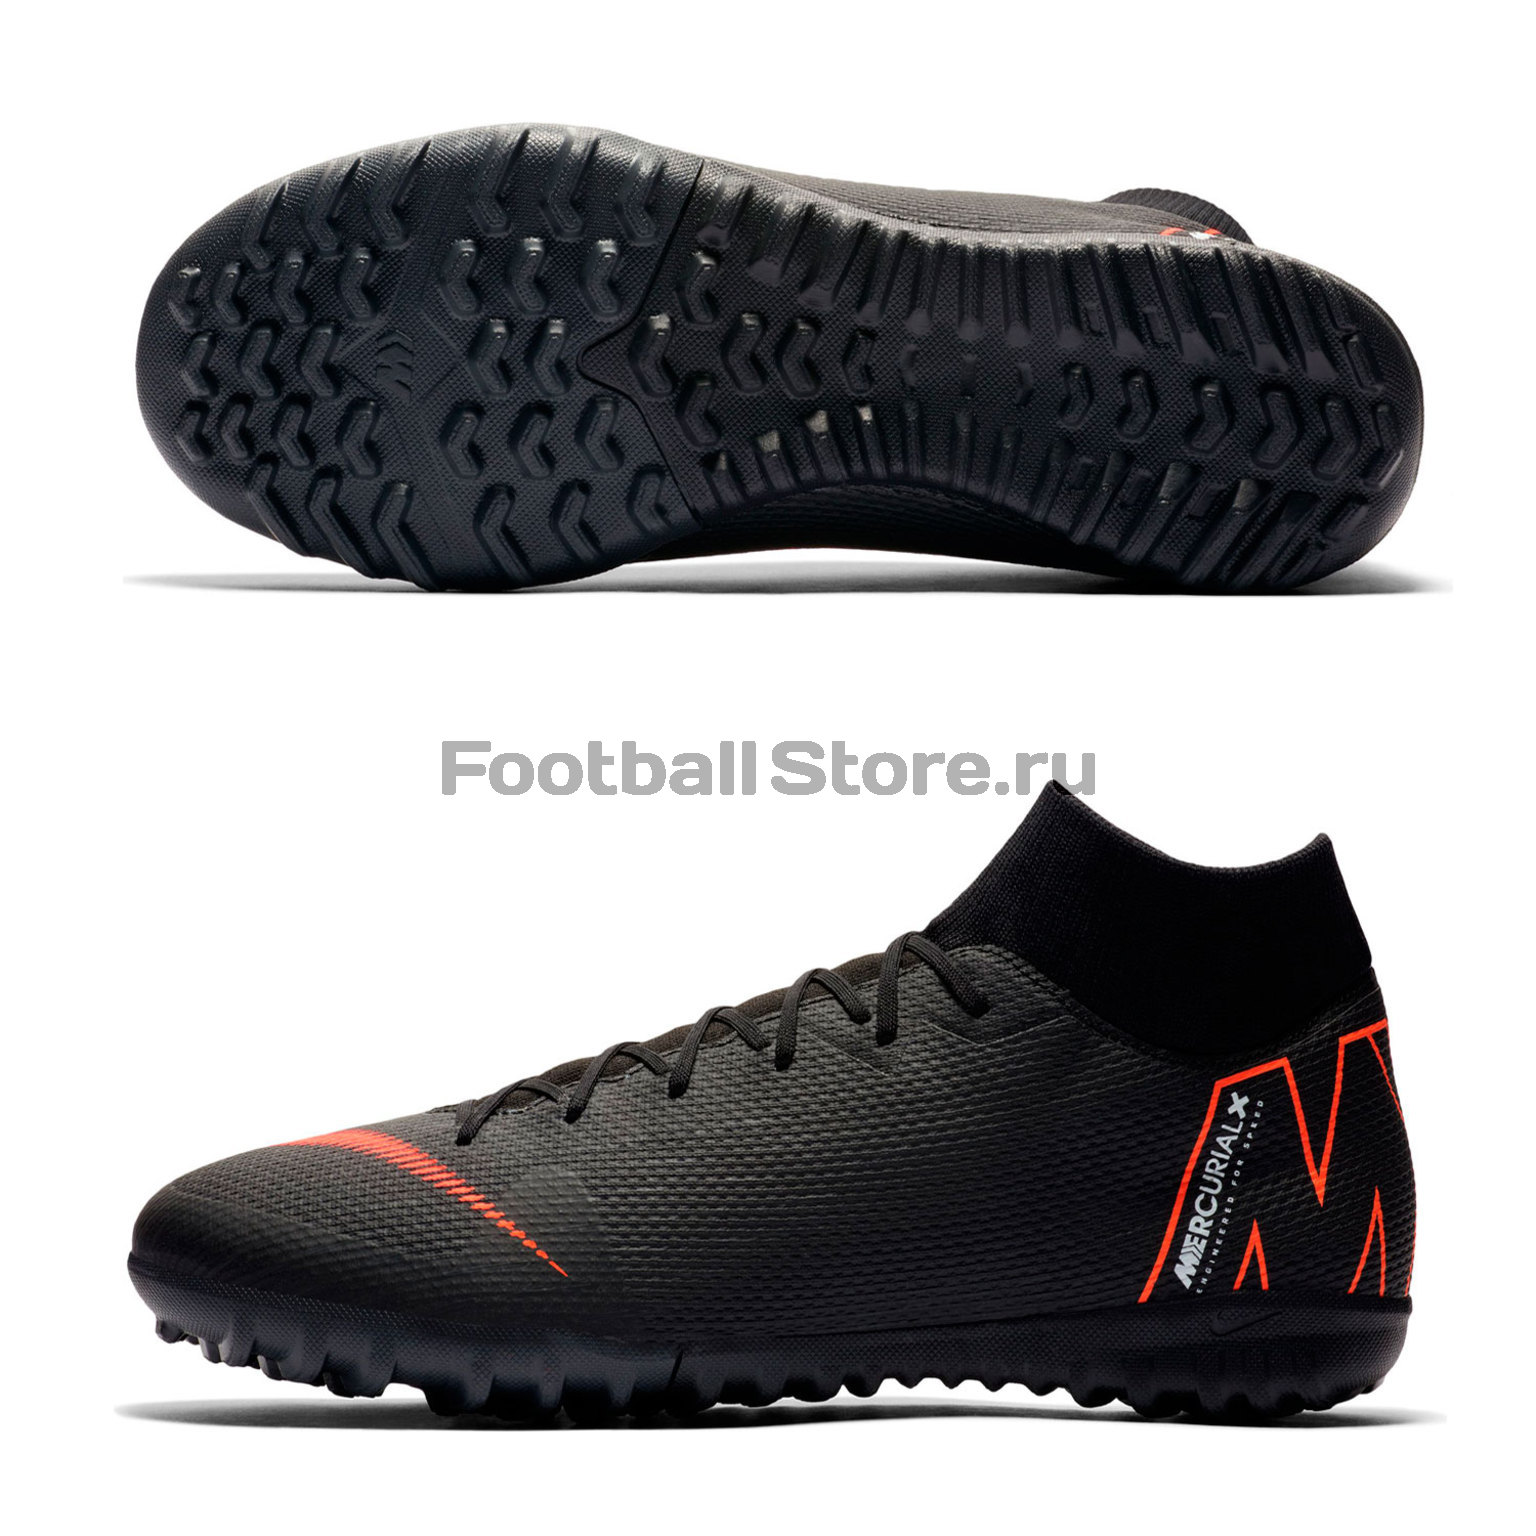 Шиповки Nike SuperFly X 6 Academy TF AH7370-081 бутсы nike phantom 3 academy ag pro ah8845 081